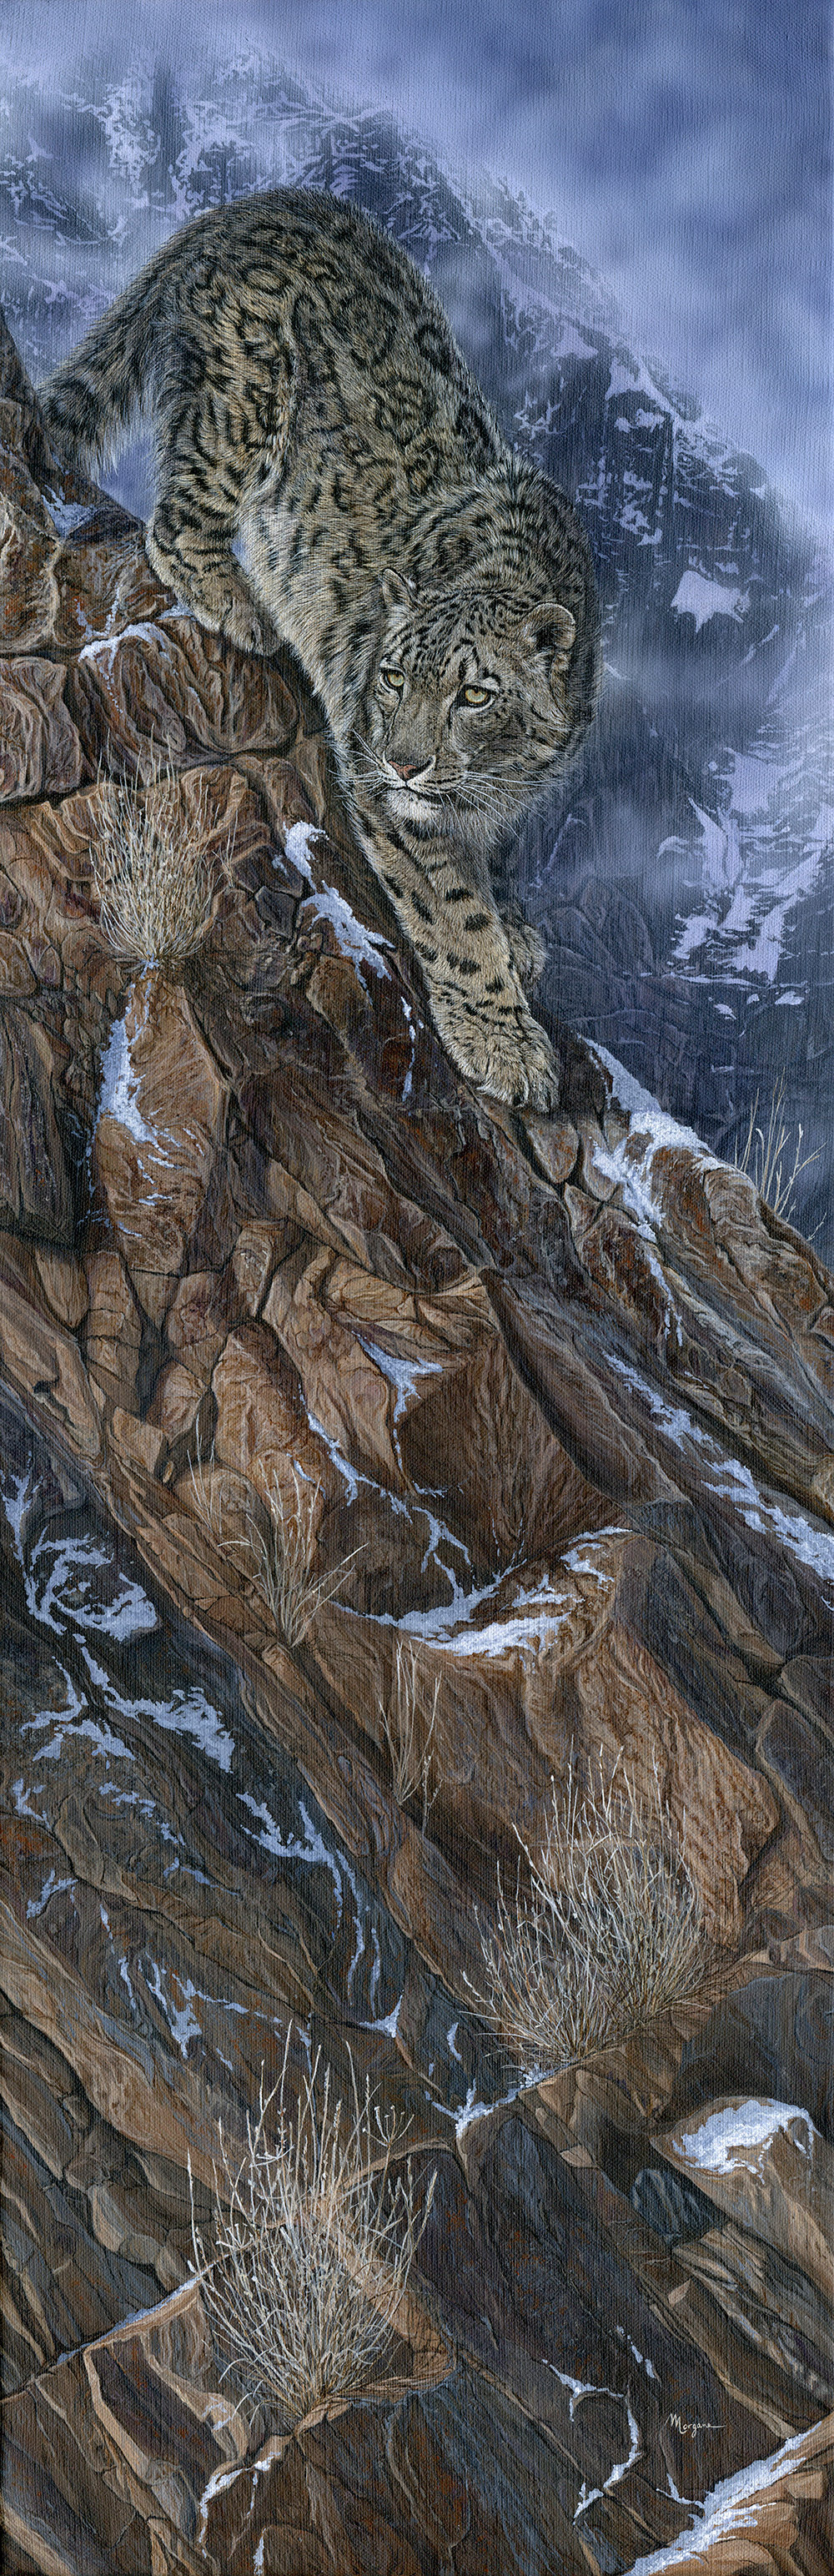 Morgane Antoine, The Mountaineer, Acrylic on canvas, 90 cm x 30 cm x 2 cm,  http://www.morganeantoine.com